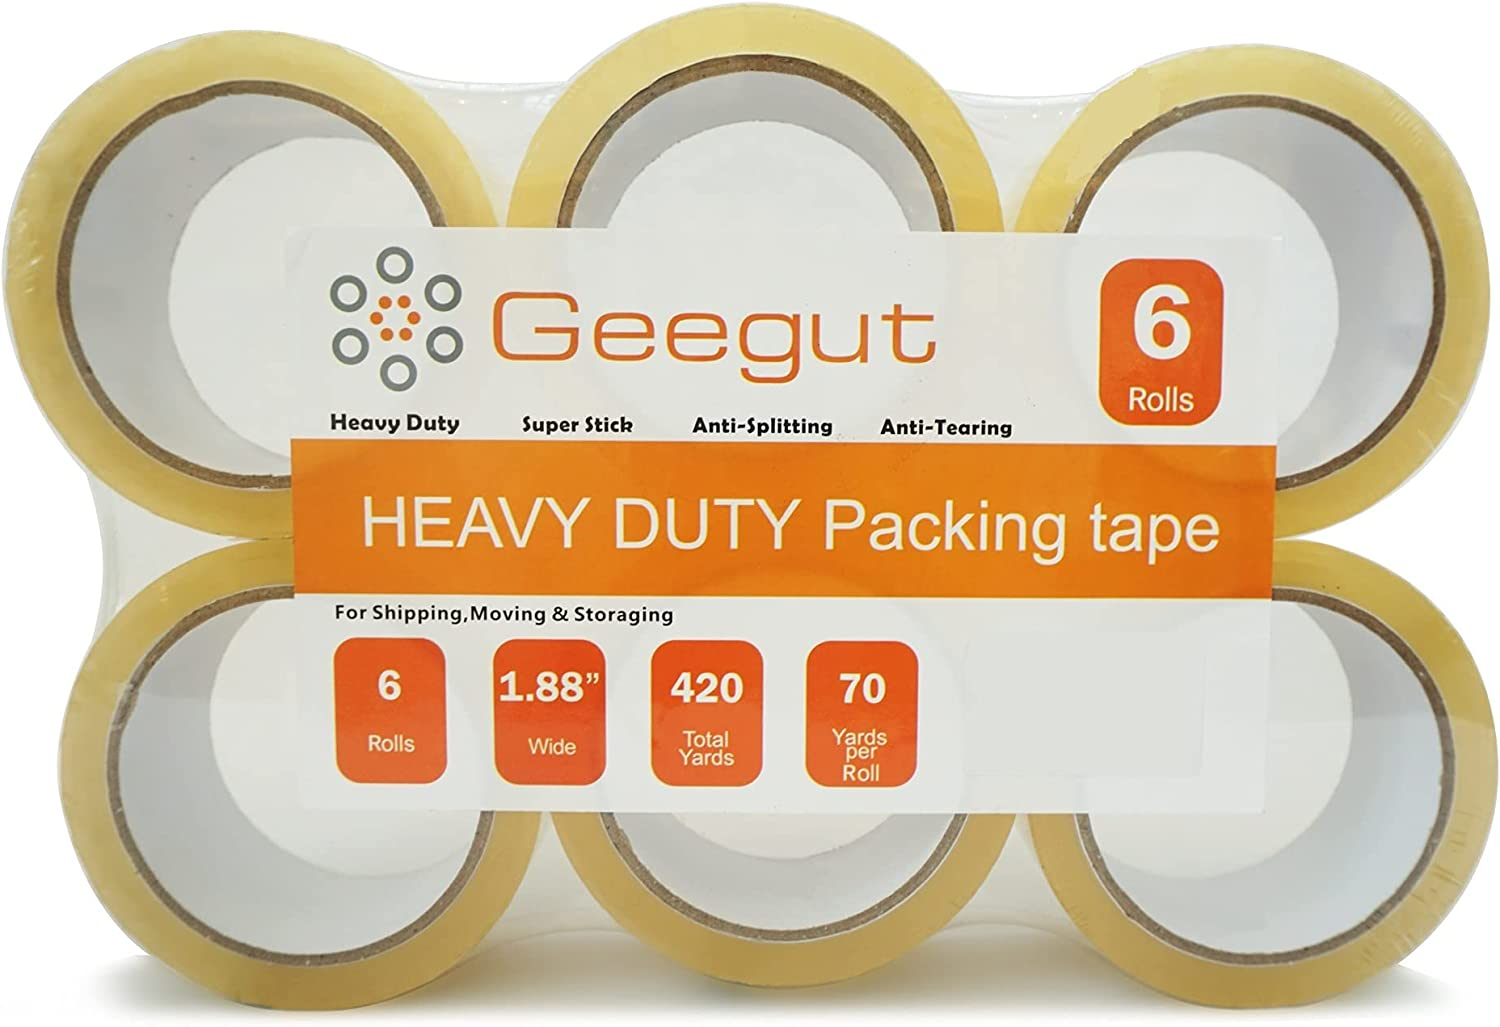 GEEGUT Clear Shipping Packing Tape Selling and selling Max 52% OFF Duty Packaging Re Heavy